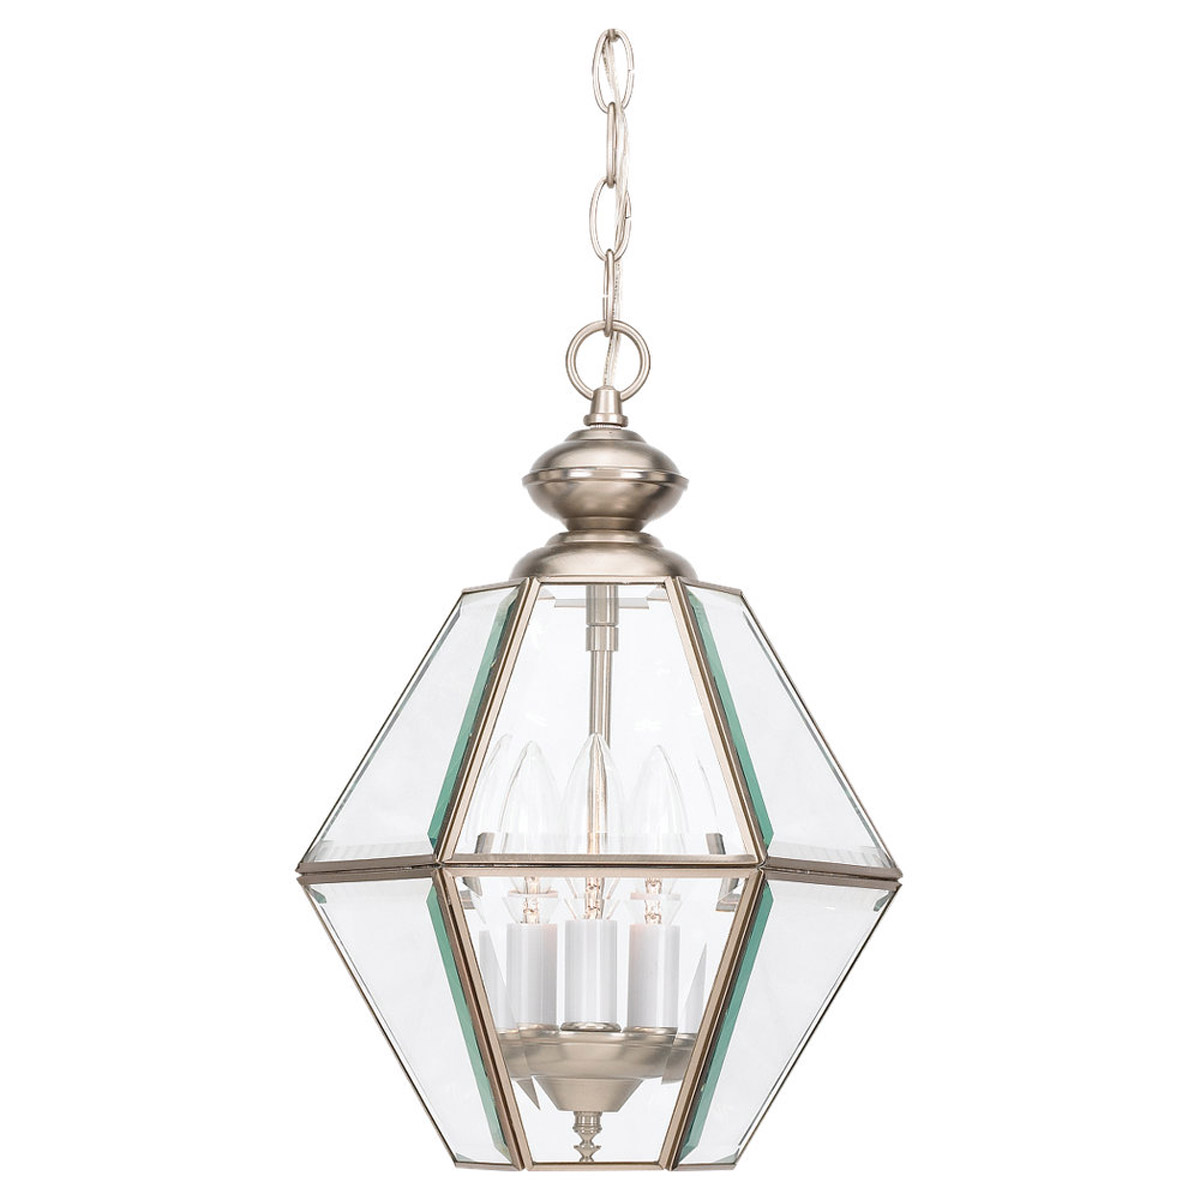 Sea Gull Lighting Grandover 3 Light Foyer Pendant in Brushed Nickel 5116-962